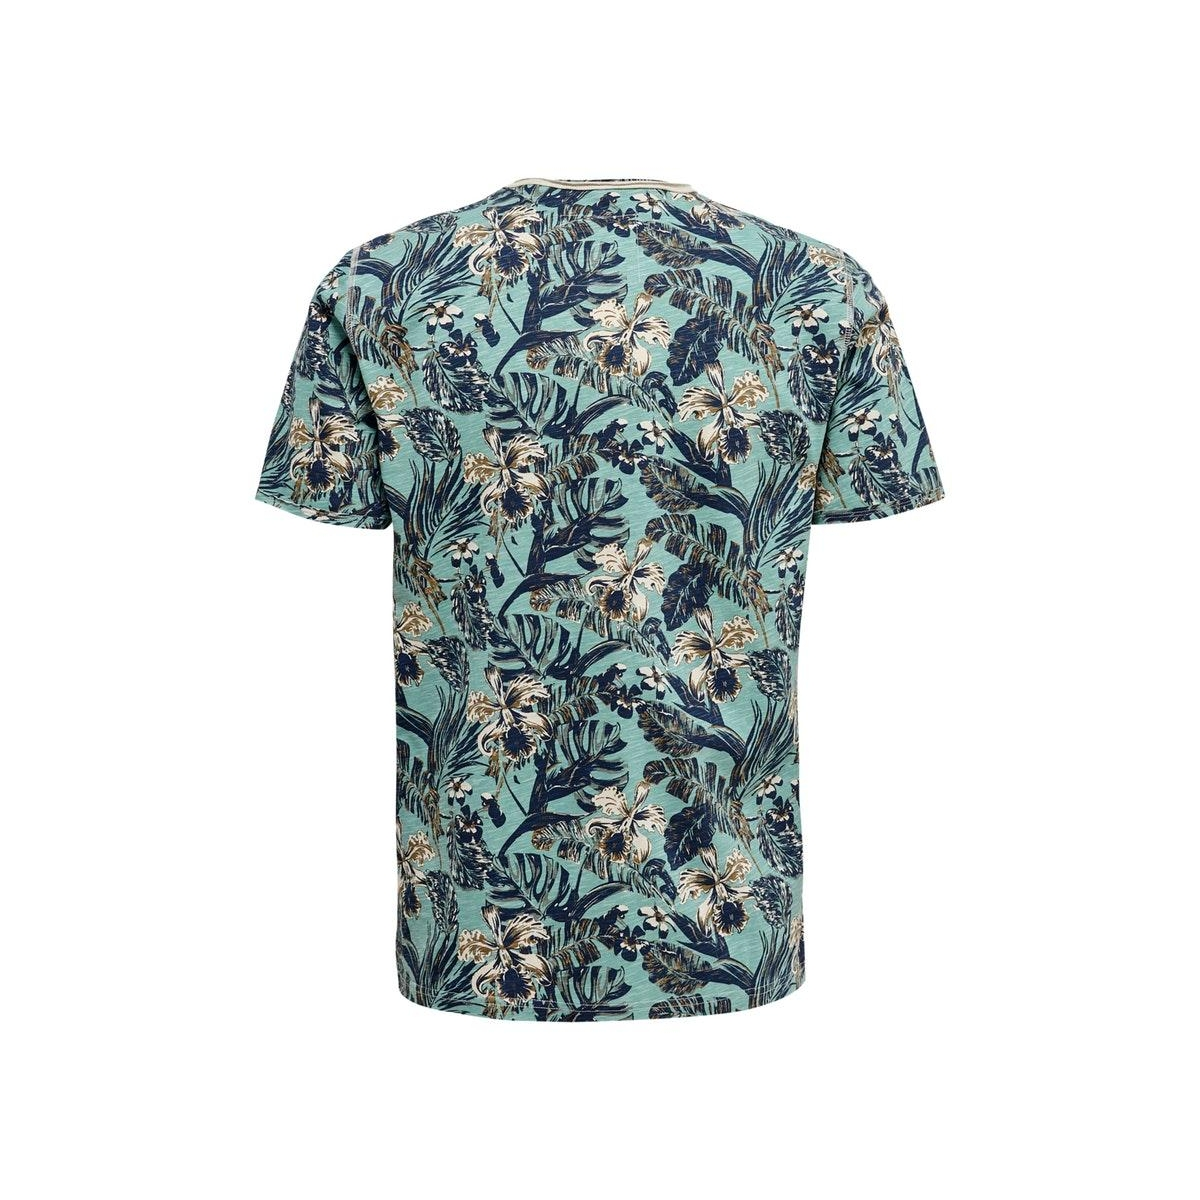 onscan life slimraw edge aop tee nf 6215 22016215 only & sons t-shirt mineral blue